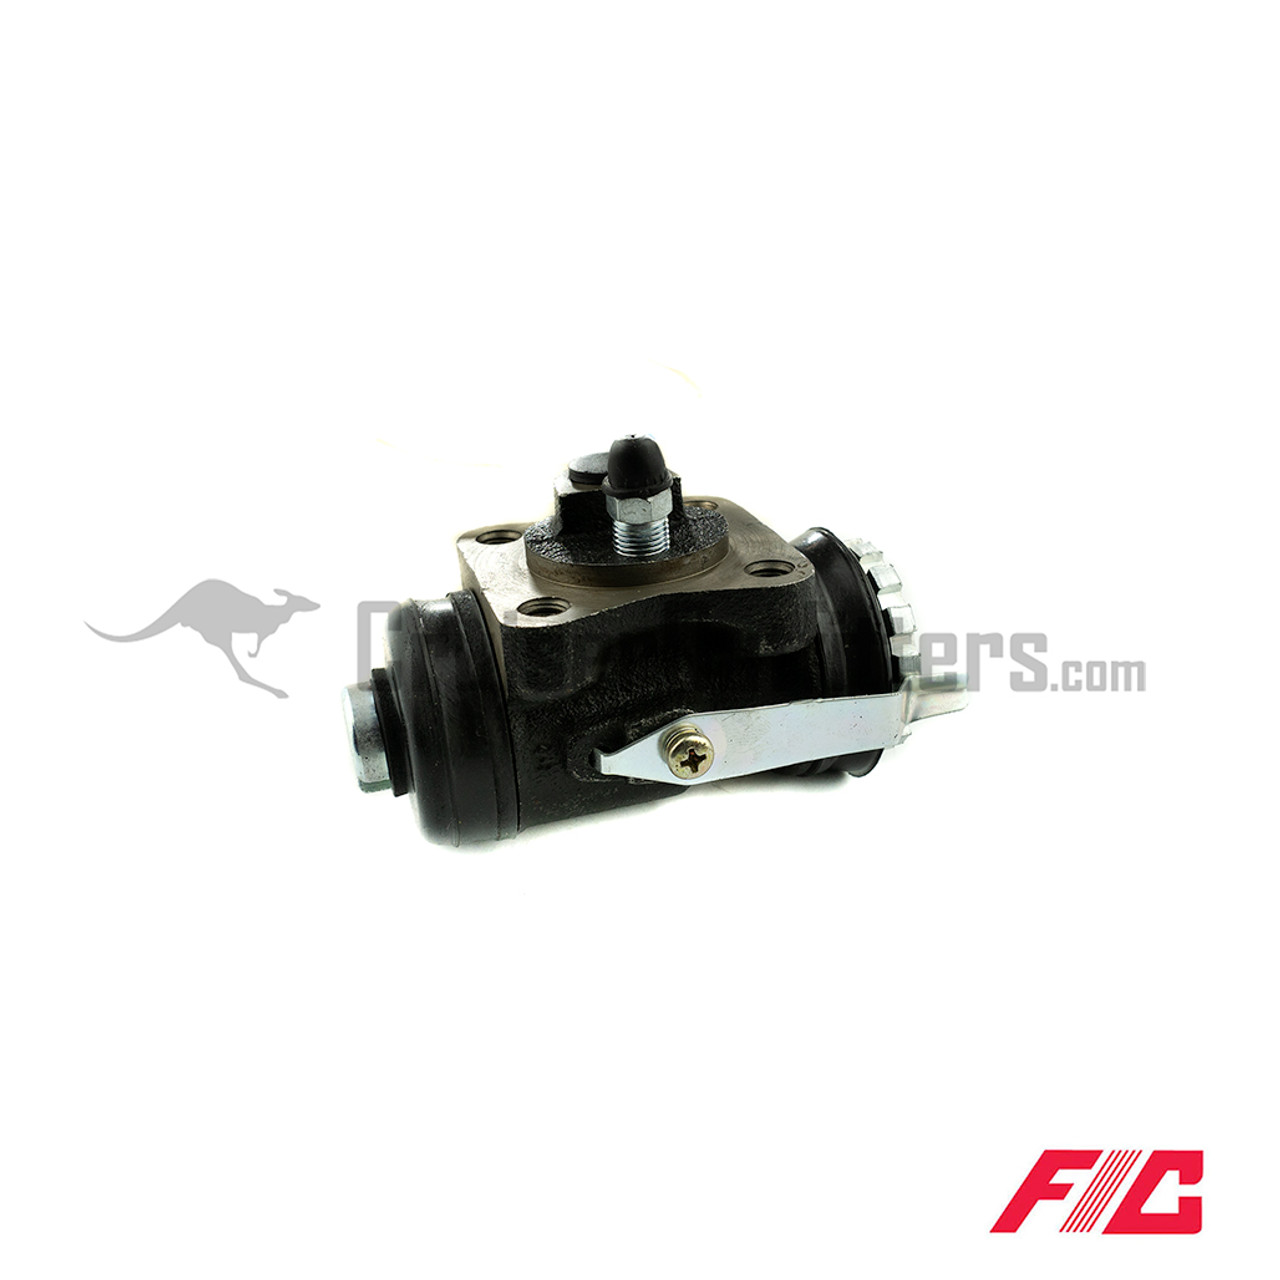 BWCF60060L - Wheel Cylinder - Front All